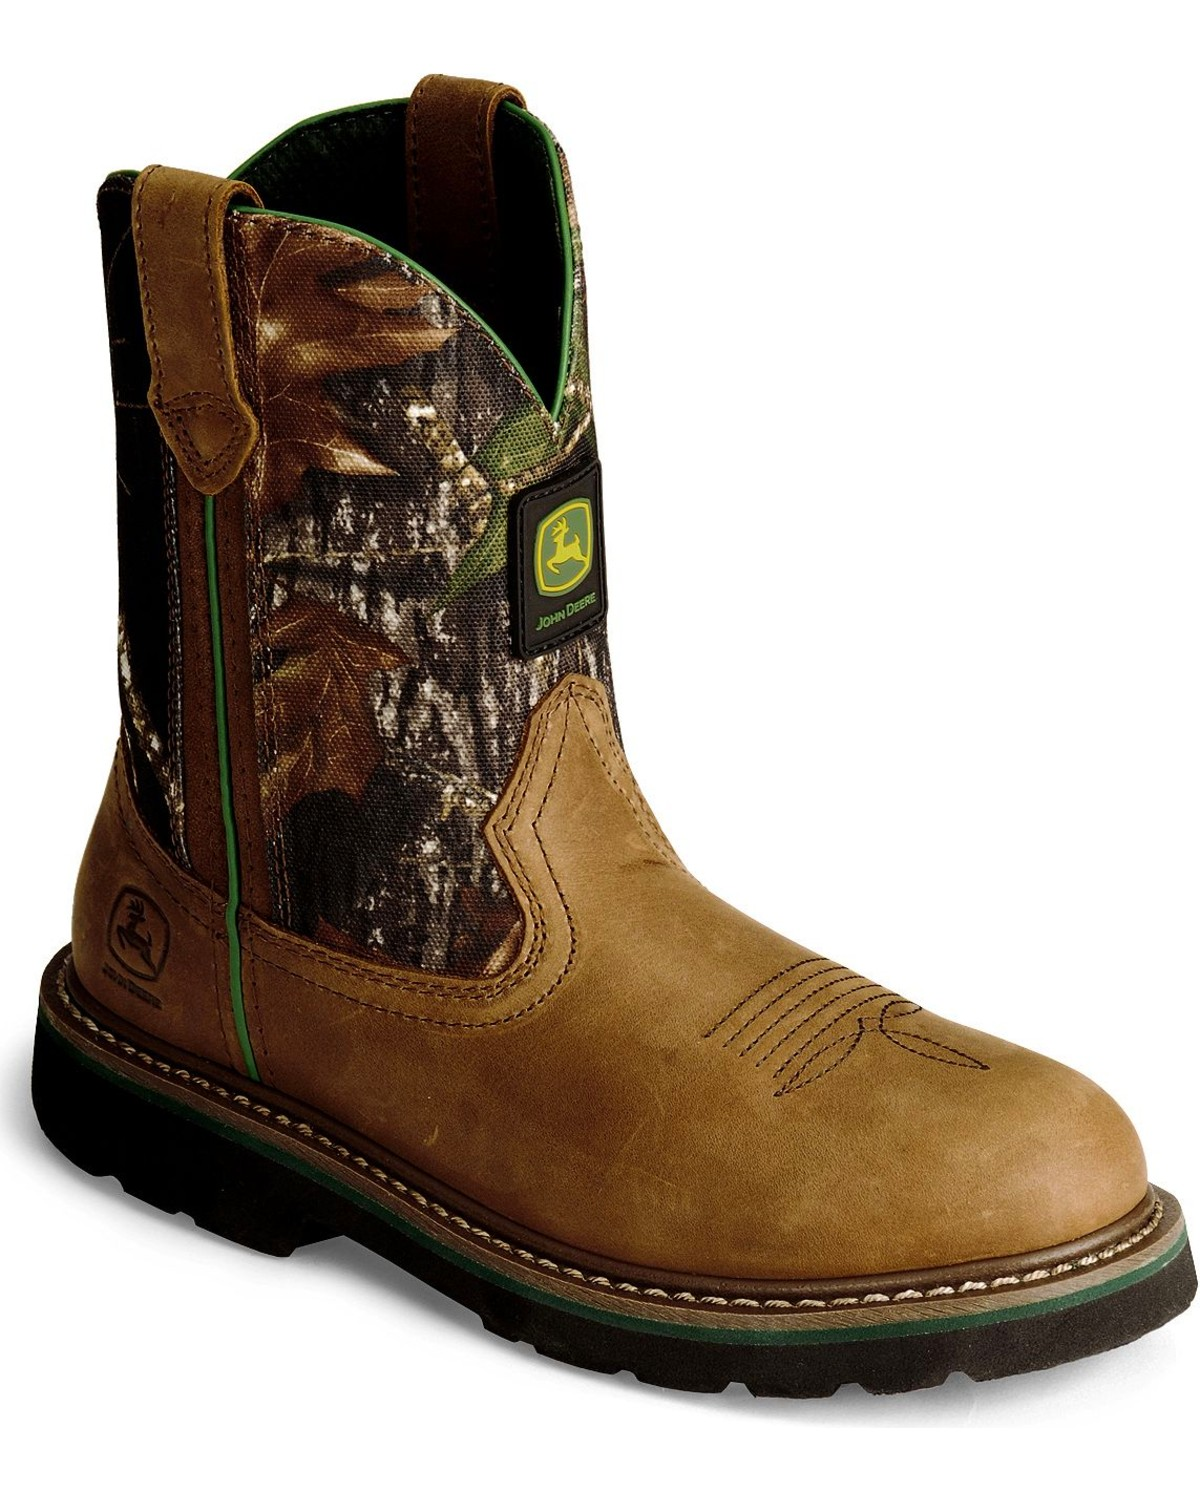 044d1936ead John Deere Youth Boys' Camouflage Boot - Round Toe